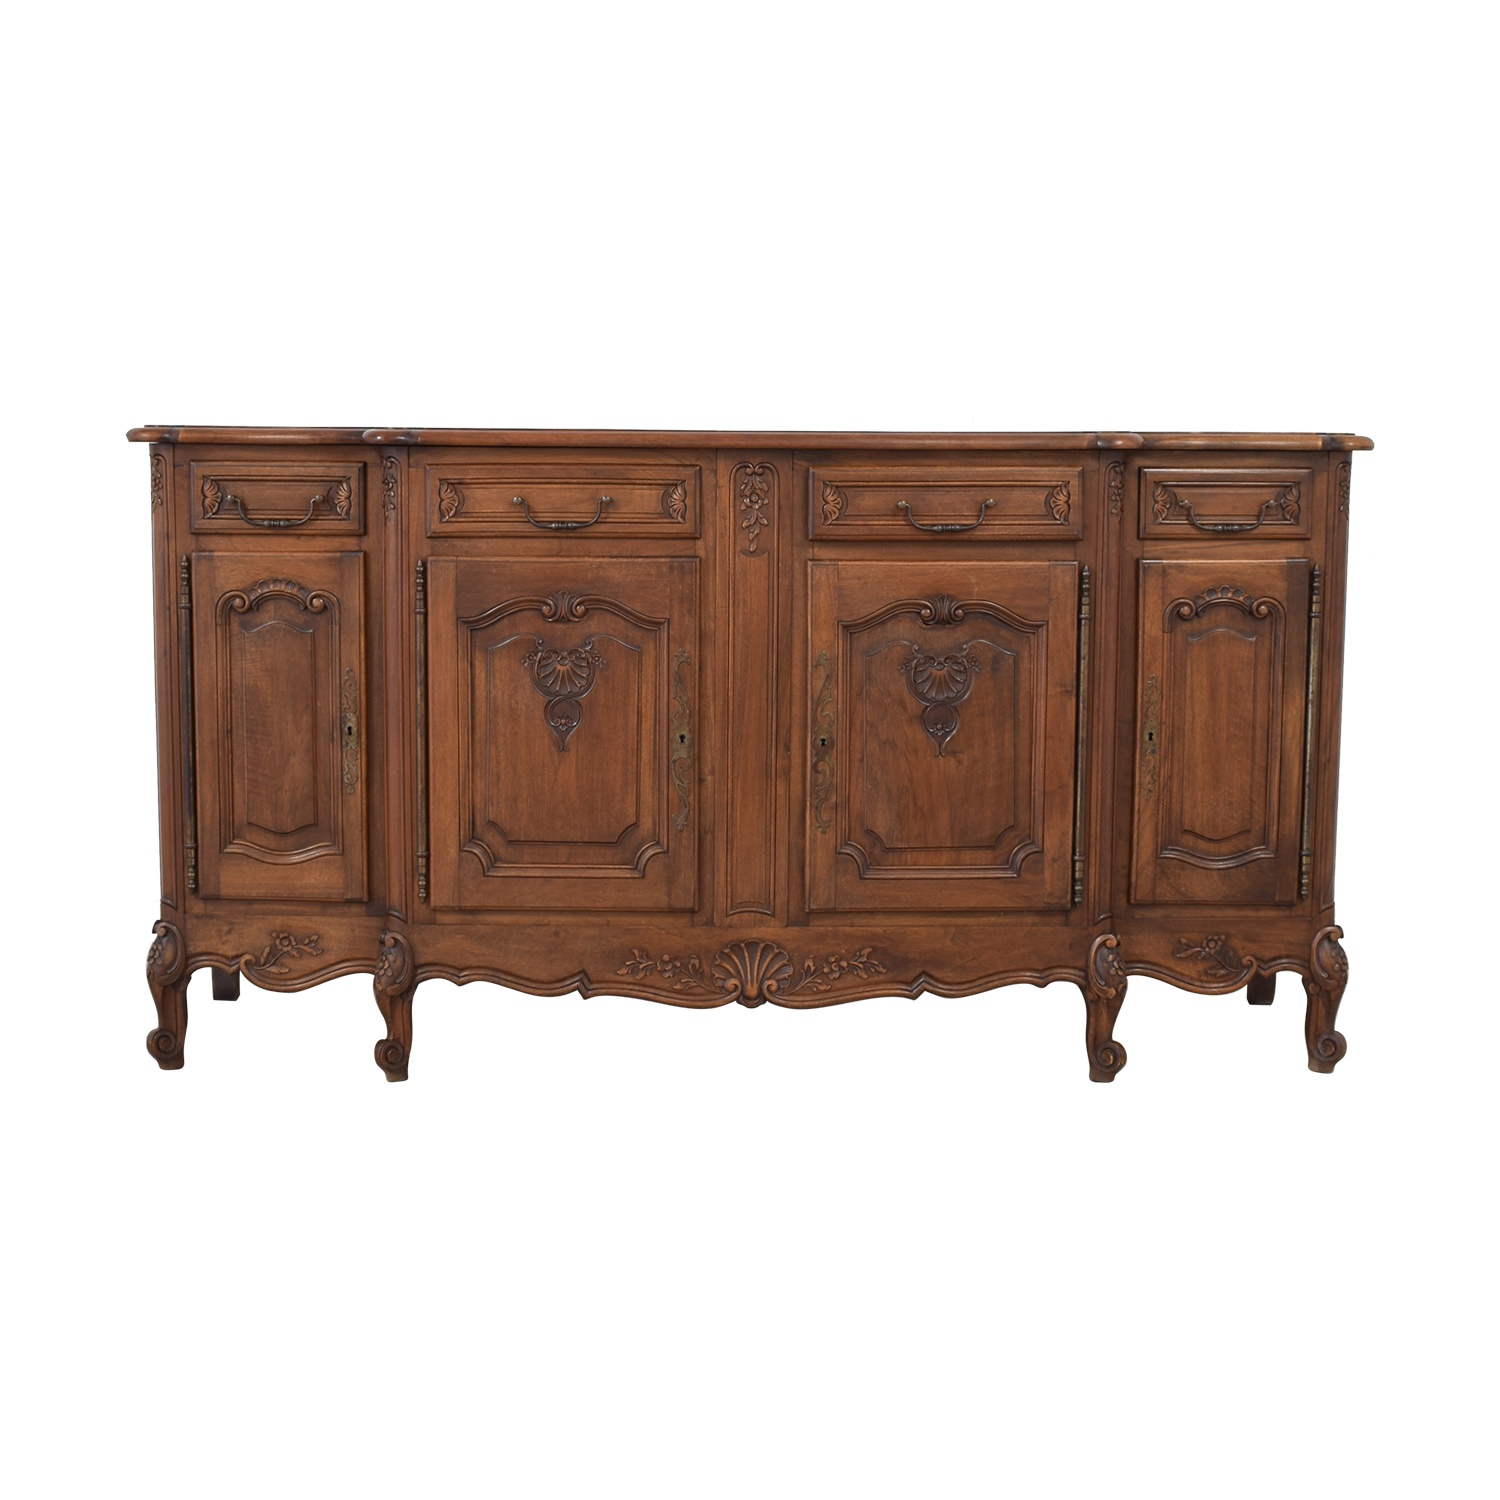 Antique Credenza second hand